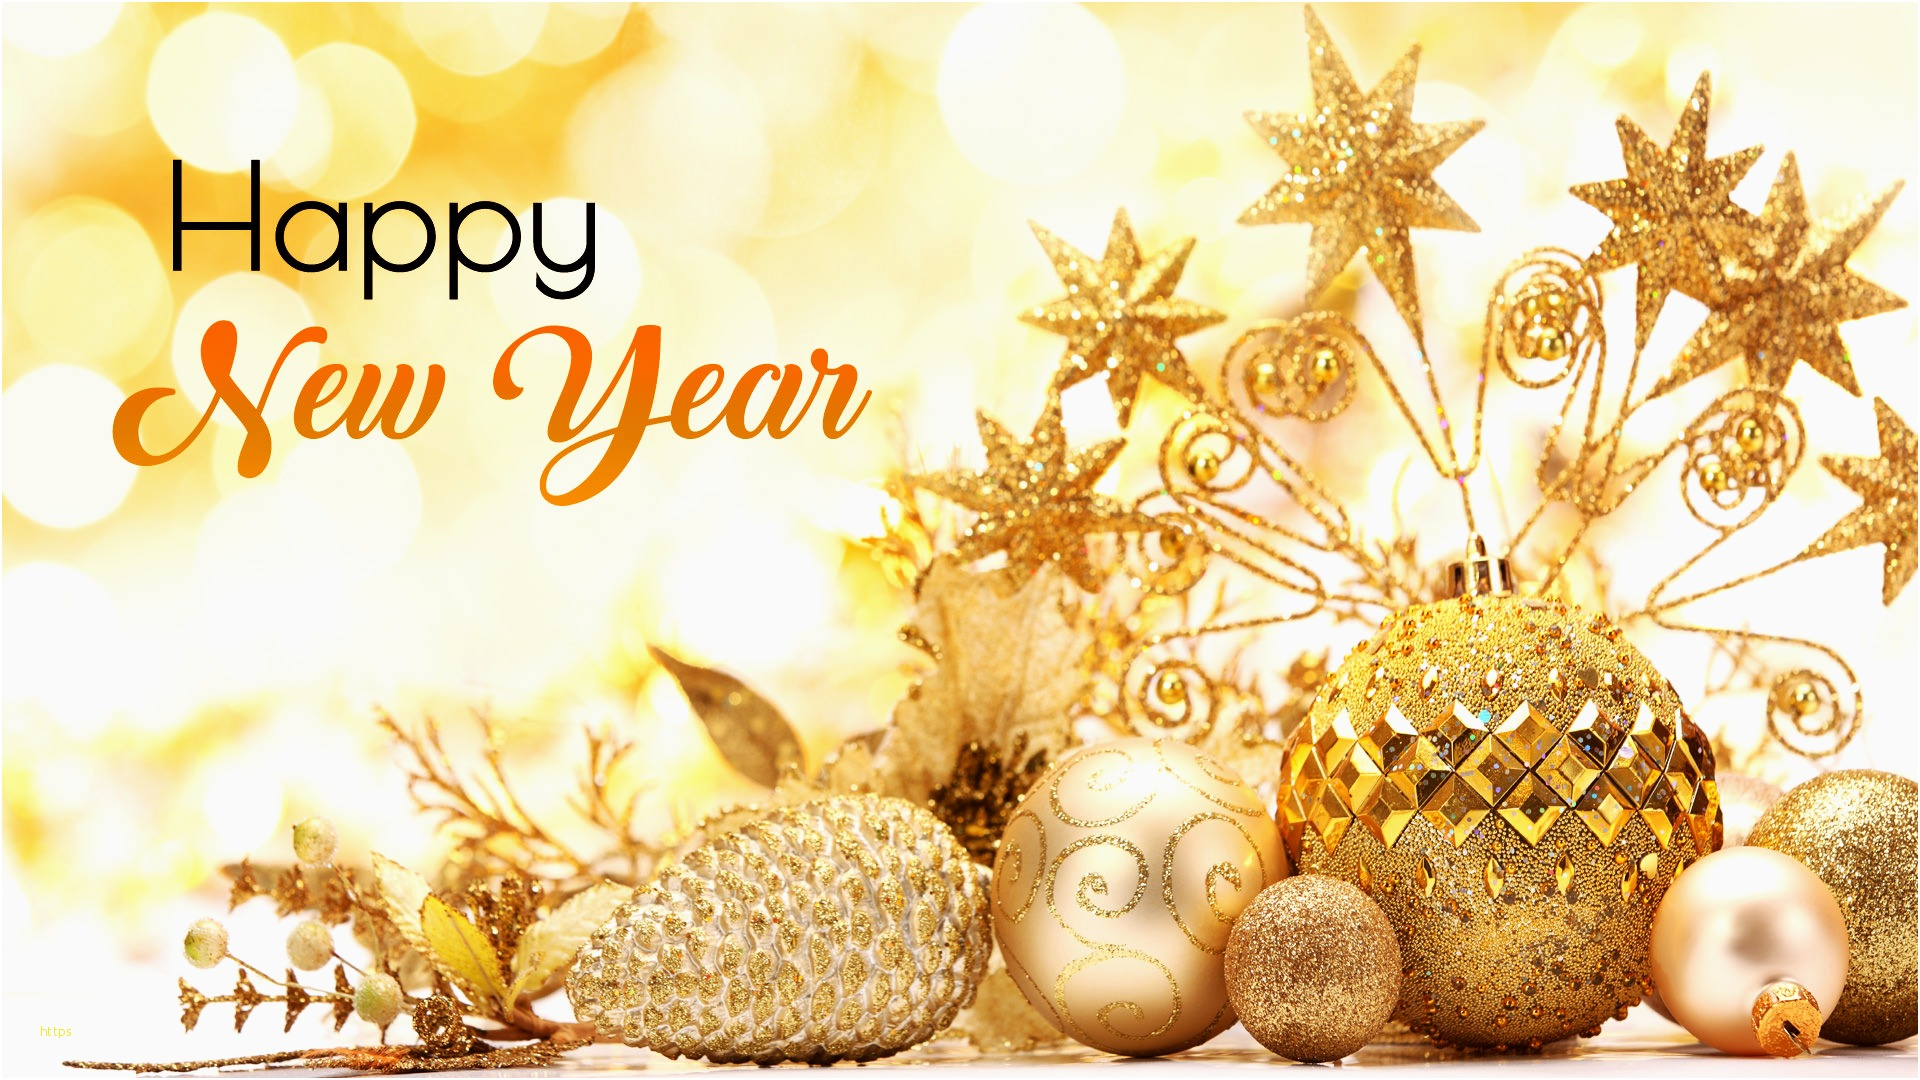 New Years Wallpaper Awesome Special Happy New Year - Best Happy New Year 2018 , HD Wallpaper & Backgrounds